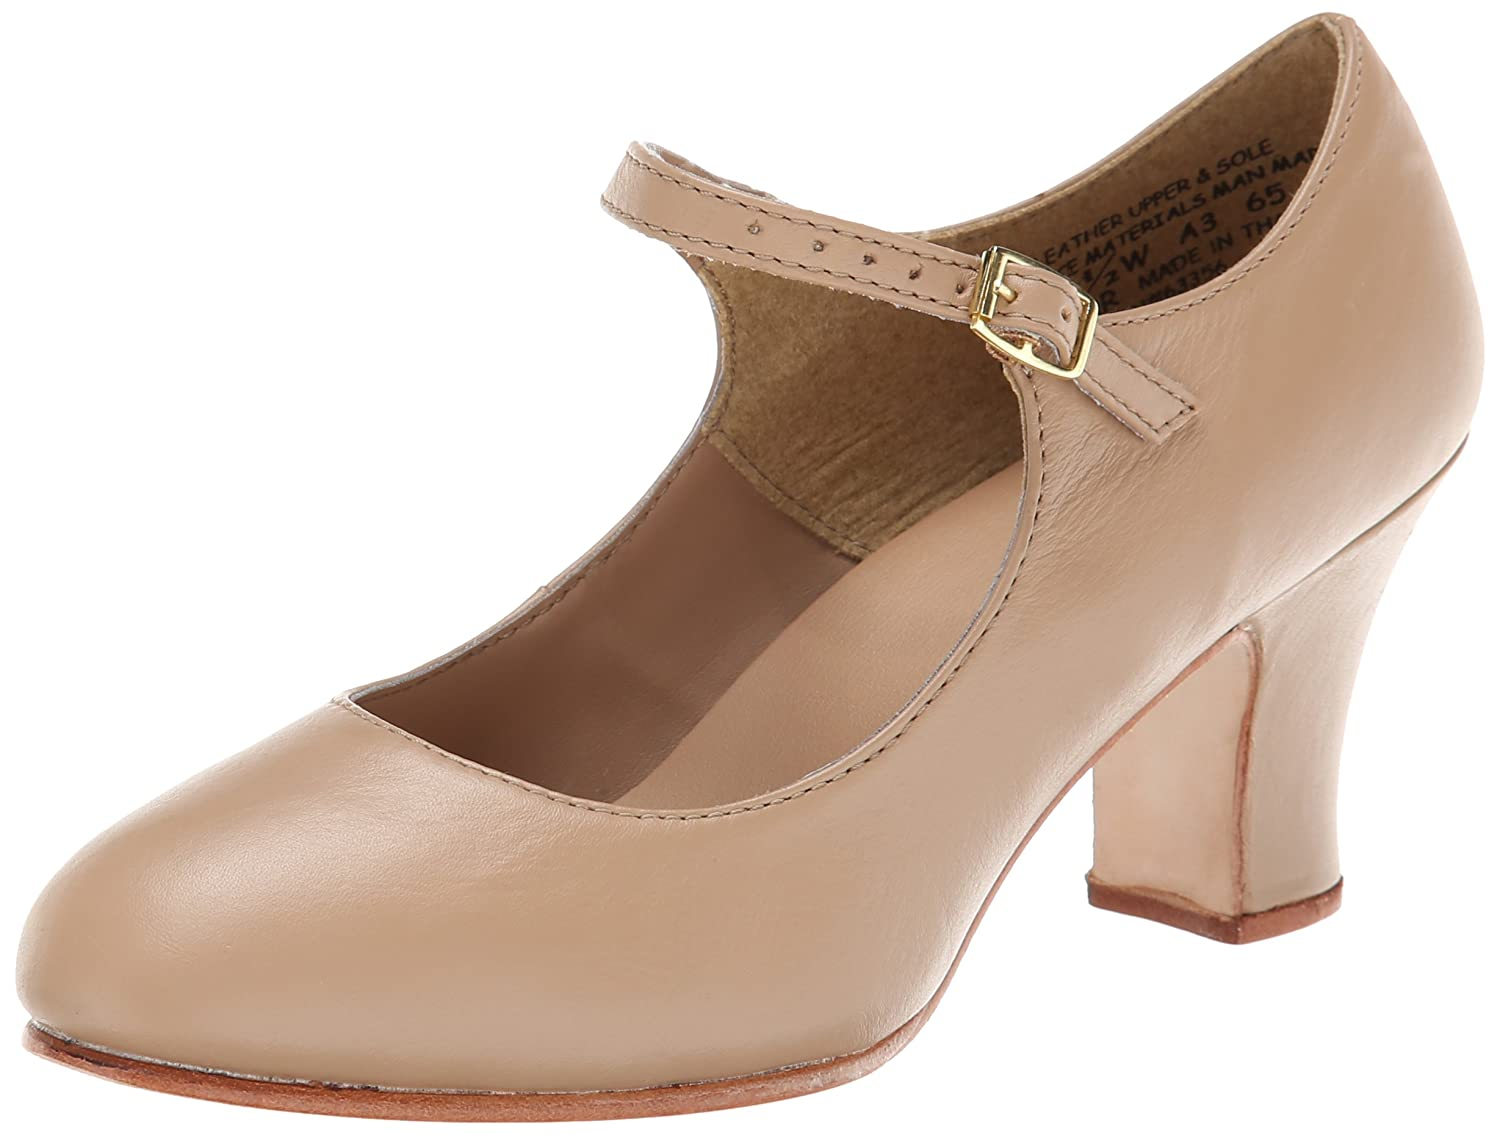 Capezio Women's Manhattan Character Shoe, B002CO4CGK 10 W US|Caramel